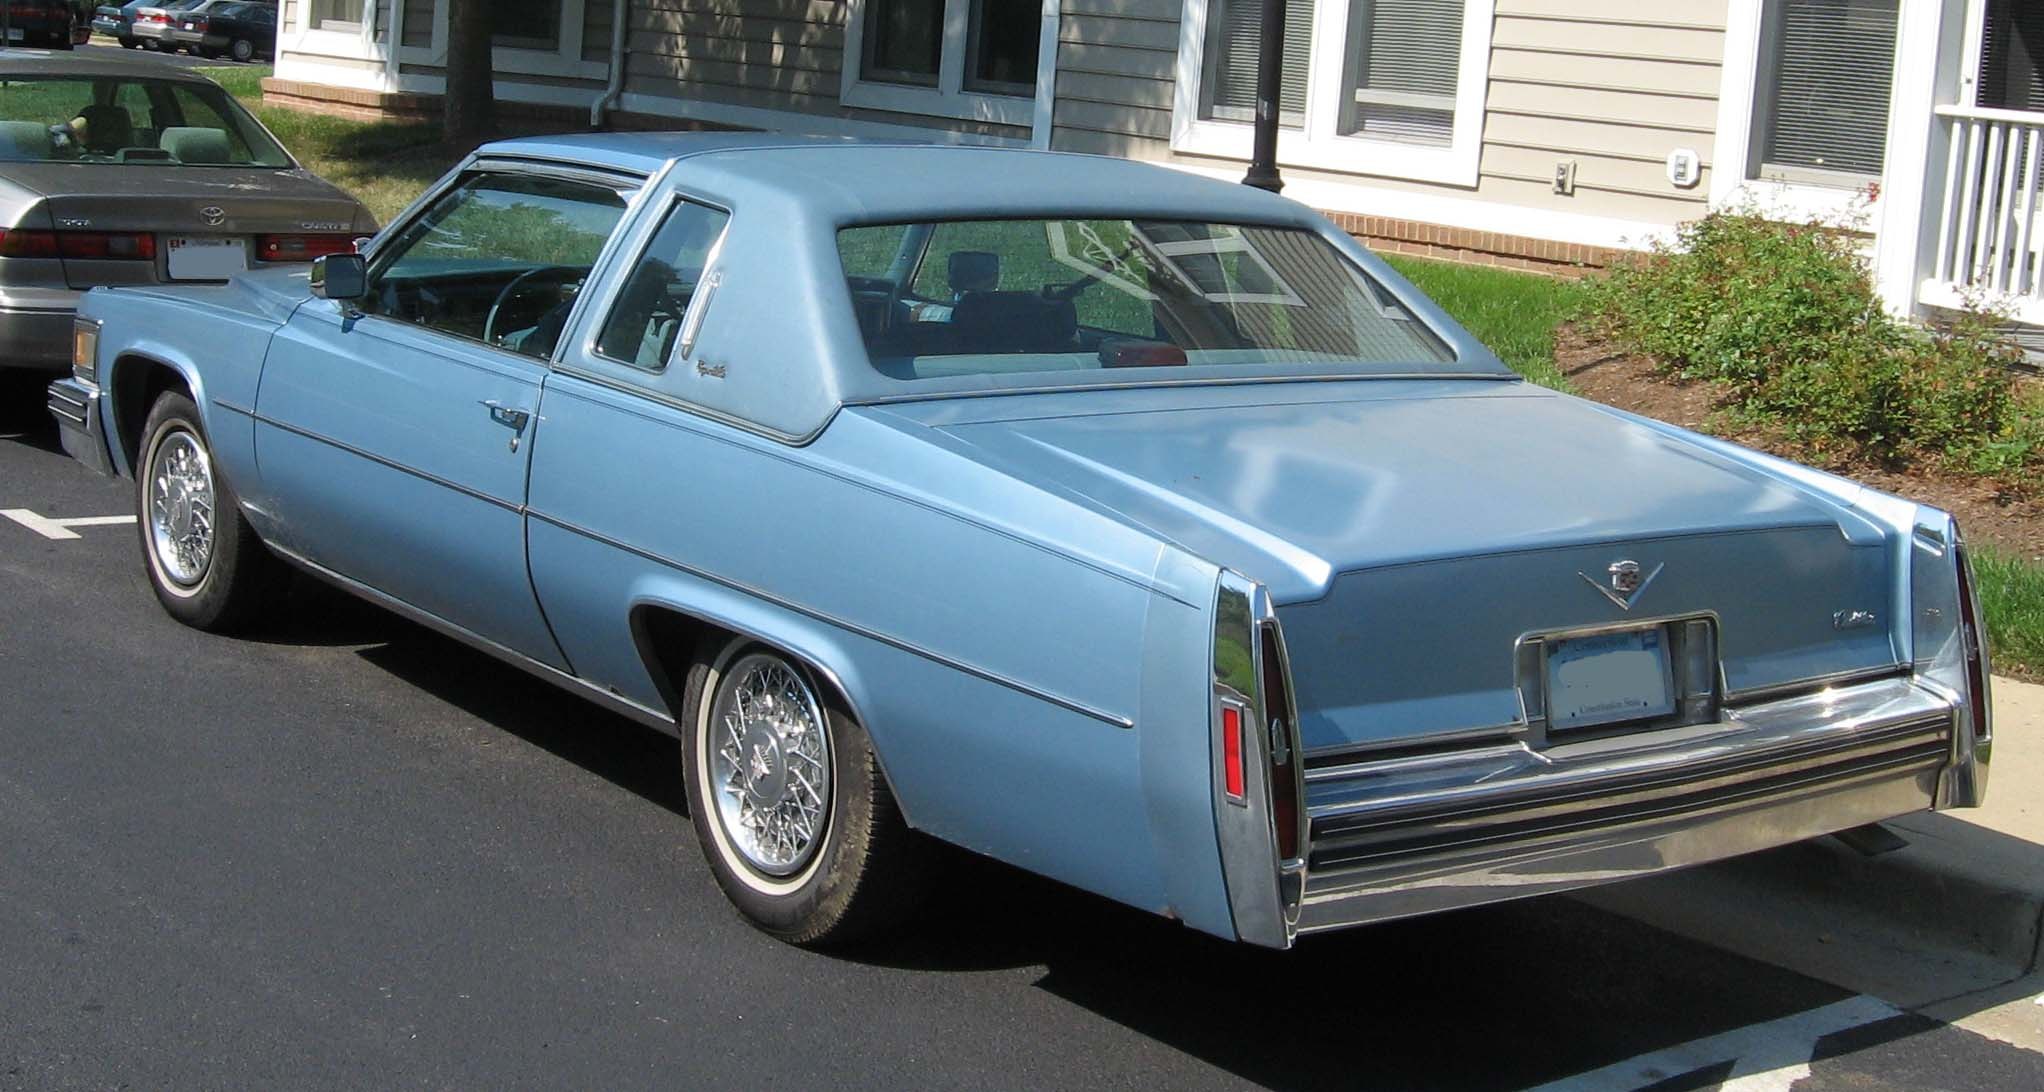 1979 cadillac coupe deville lowrider 1979 cadillac coupe deville. Cars Review. Best American Auto & Cars Review